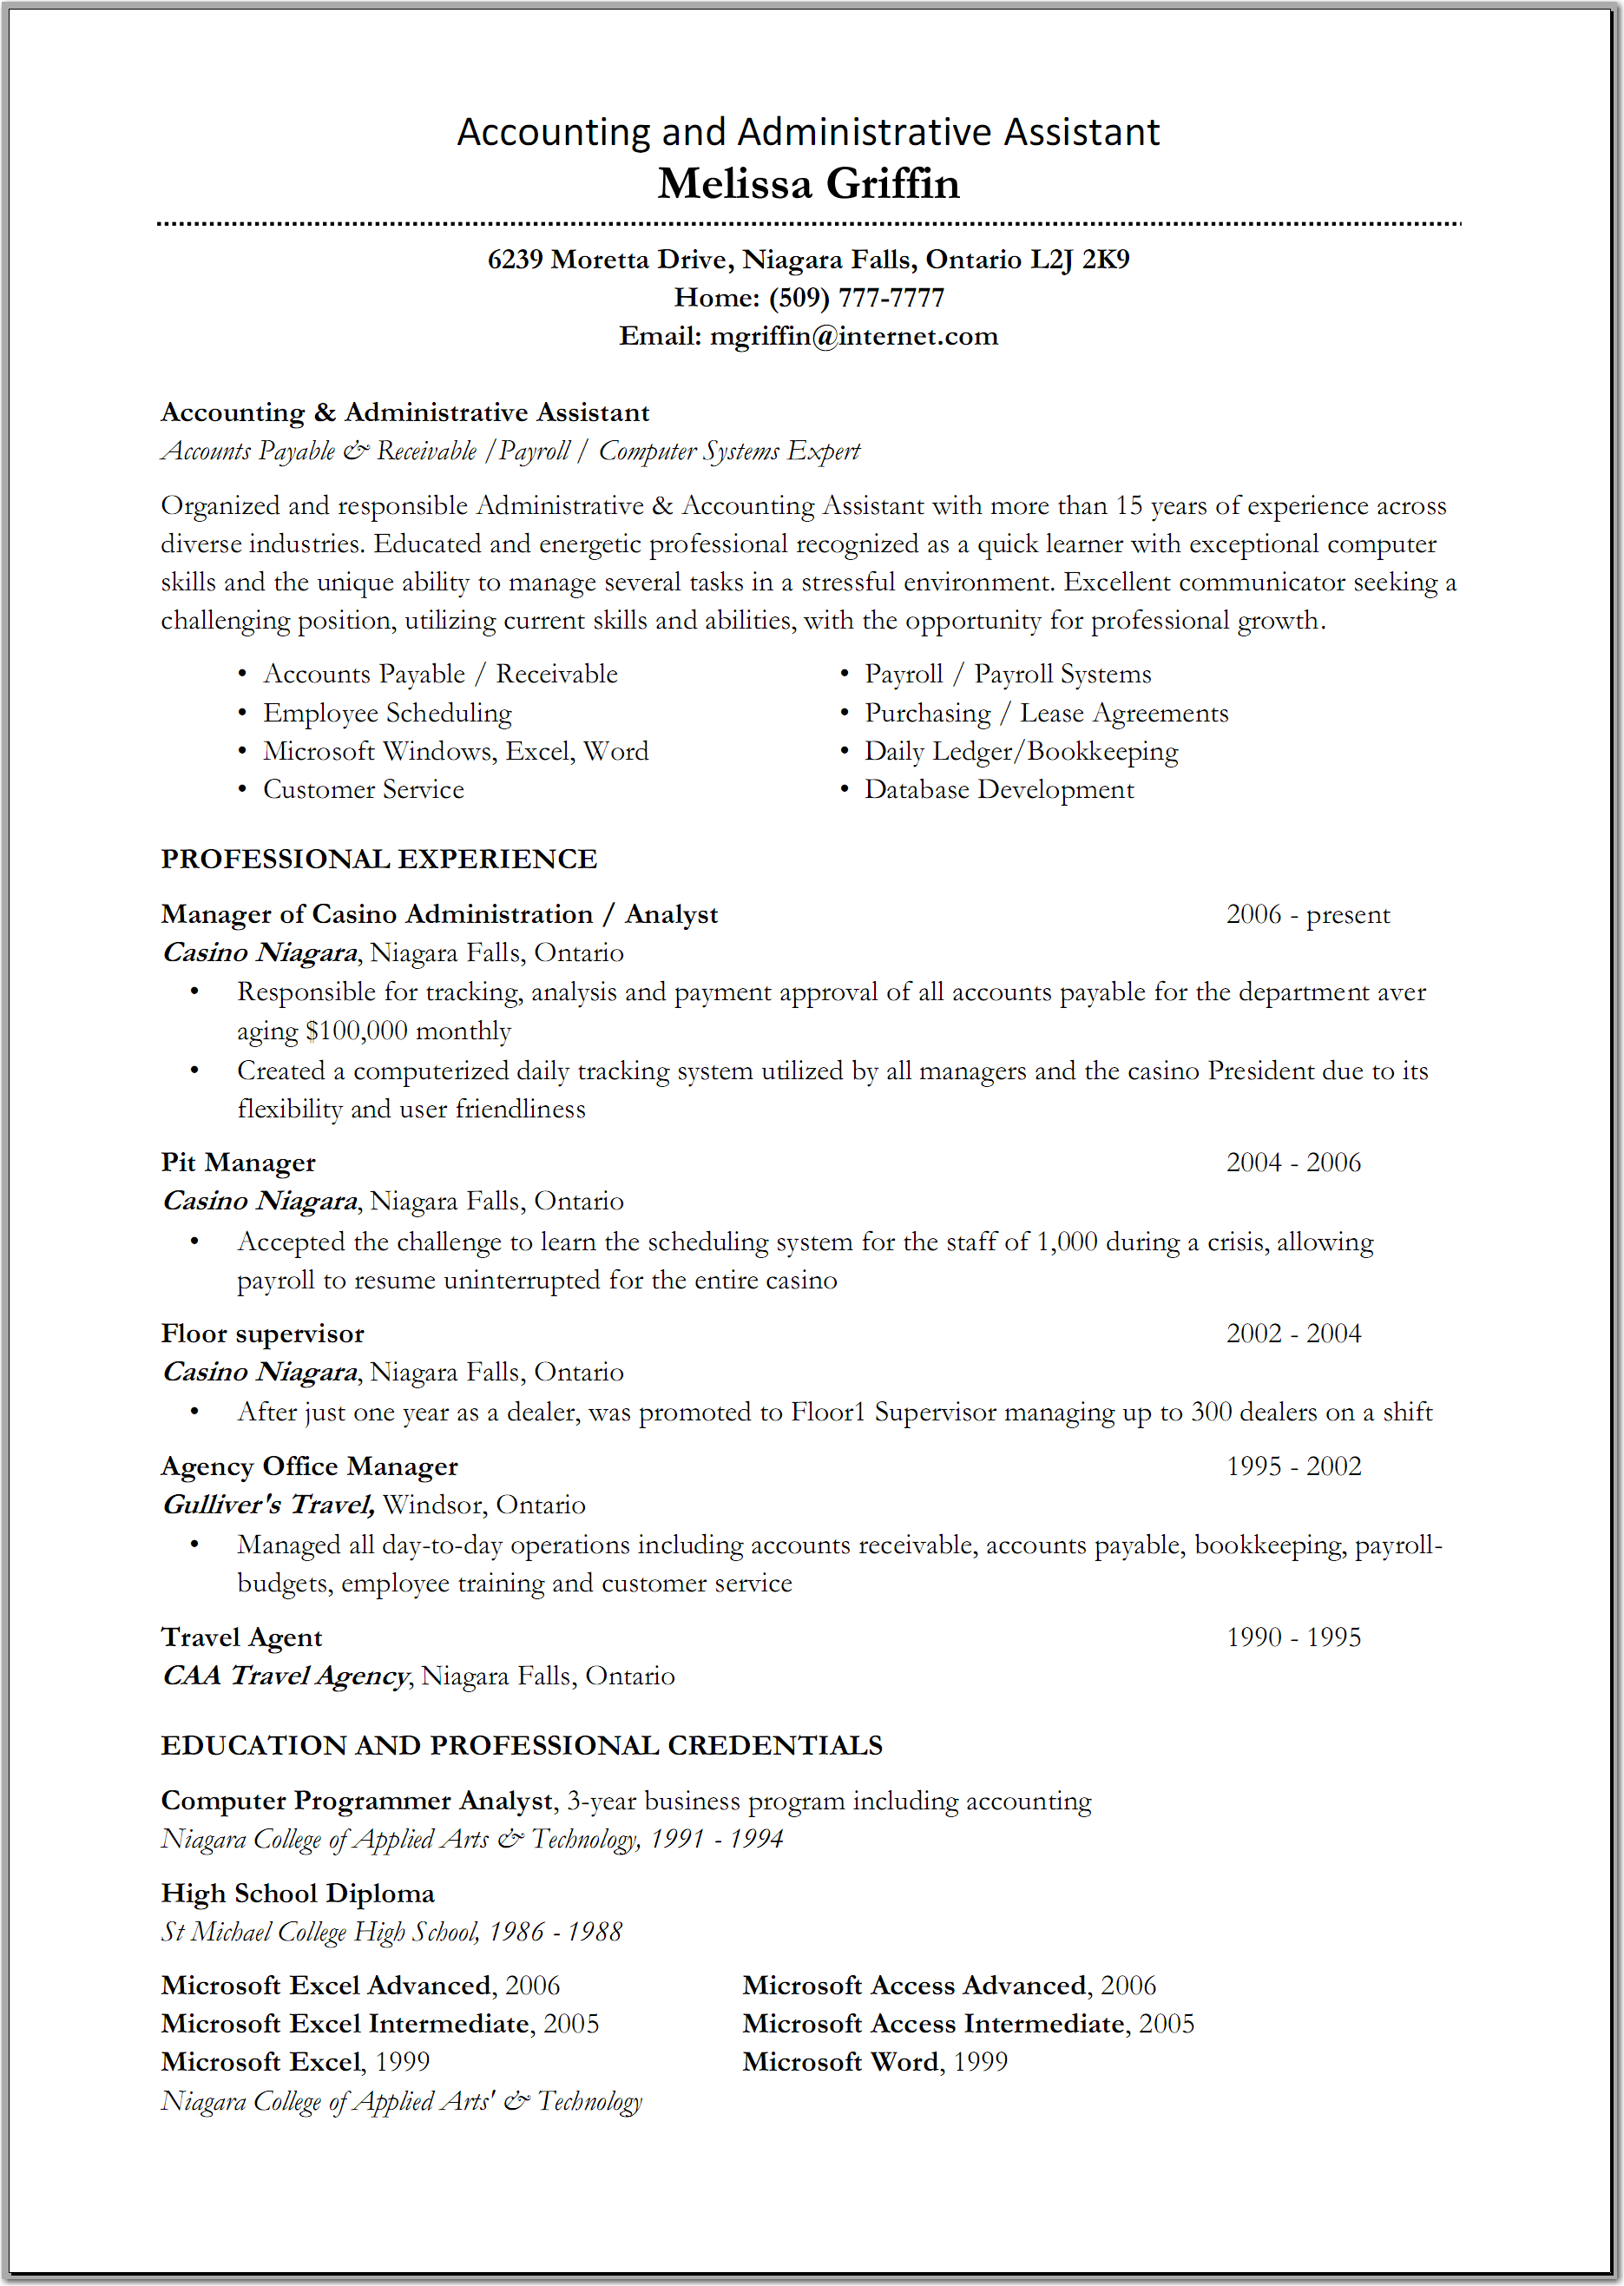 Resume 6 Seconds Great Administrative Assistant Resumes Accounting And